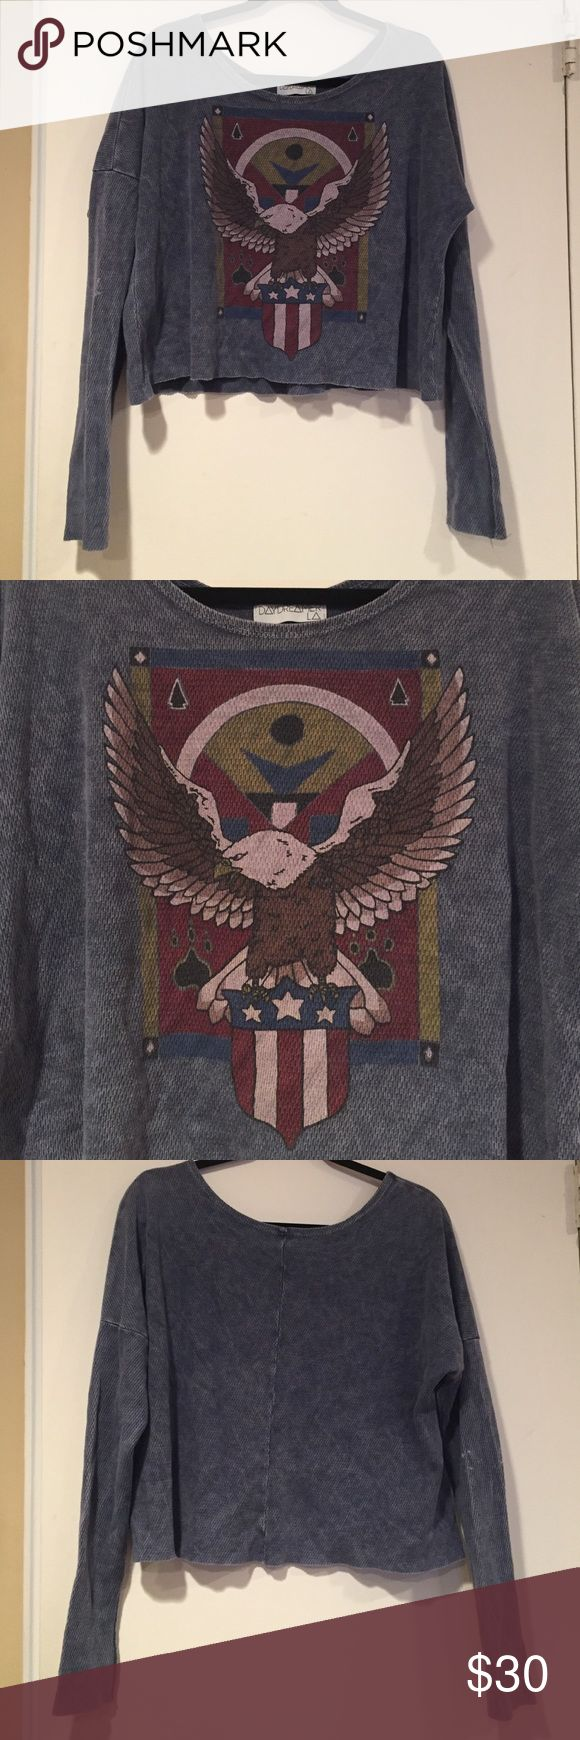 Urban Outfitters Eagle Shirt Urban Outfitters Eagle Shirt. Boxy body with more fitted arms. M/L Urban Outfitters Tops Tees - Long Sleeve